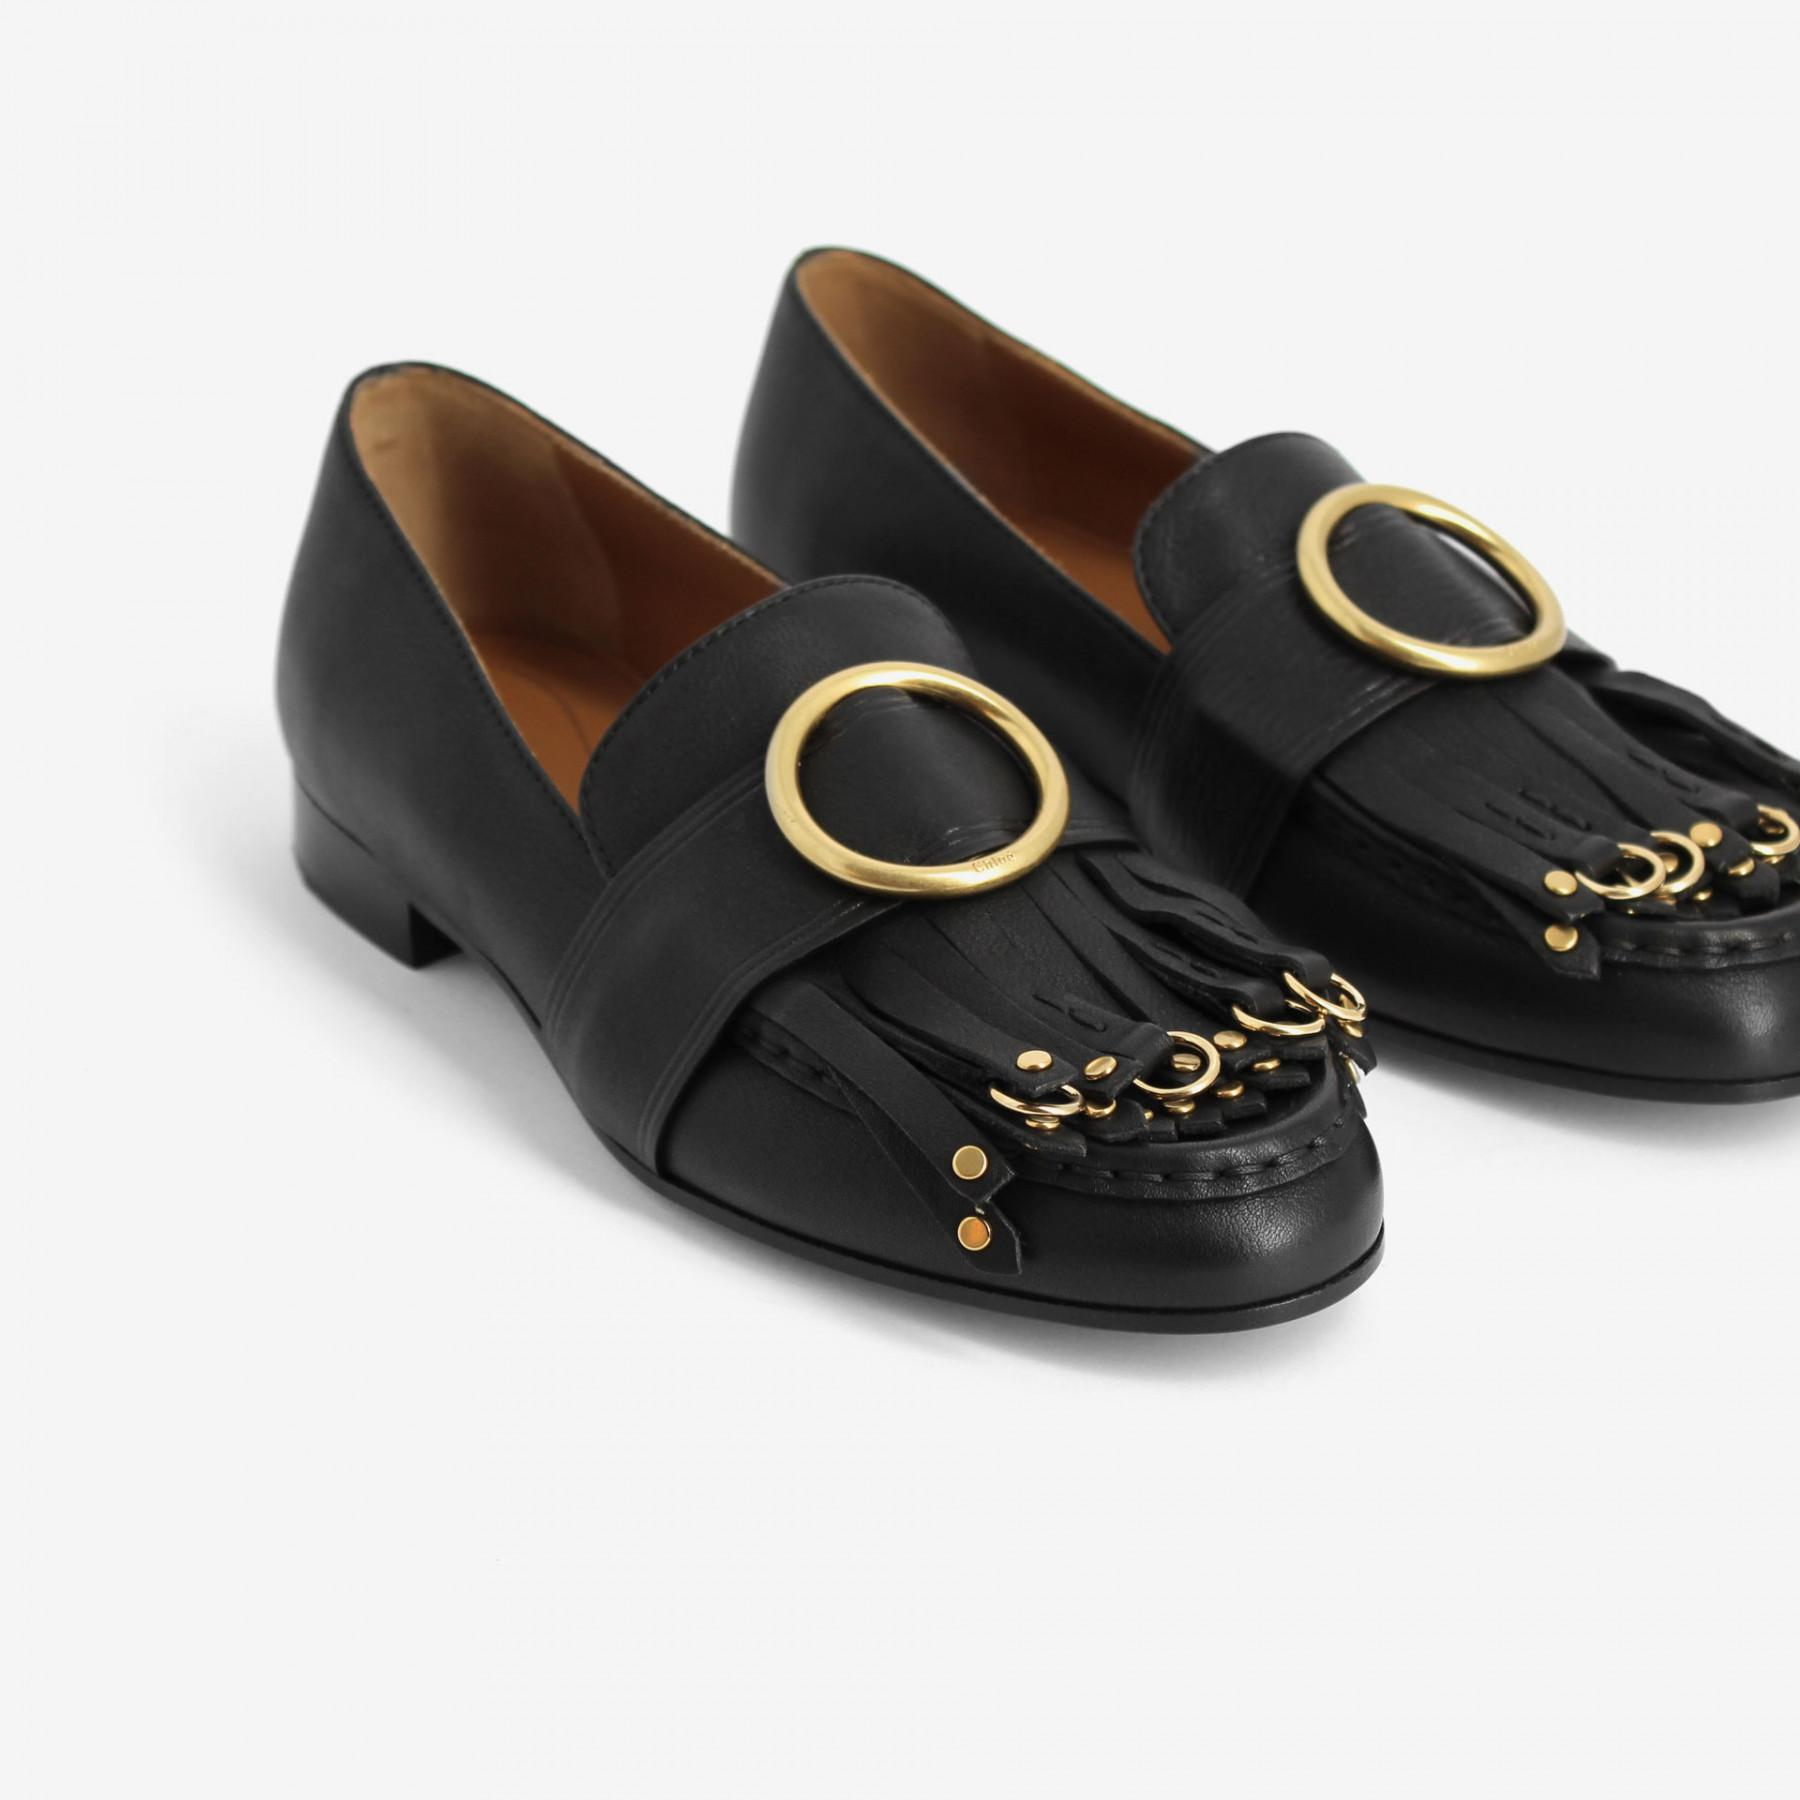 Lyst In Chloé Olly Loafers Black Flat nRU8qxU